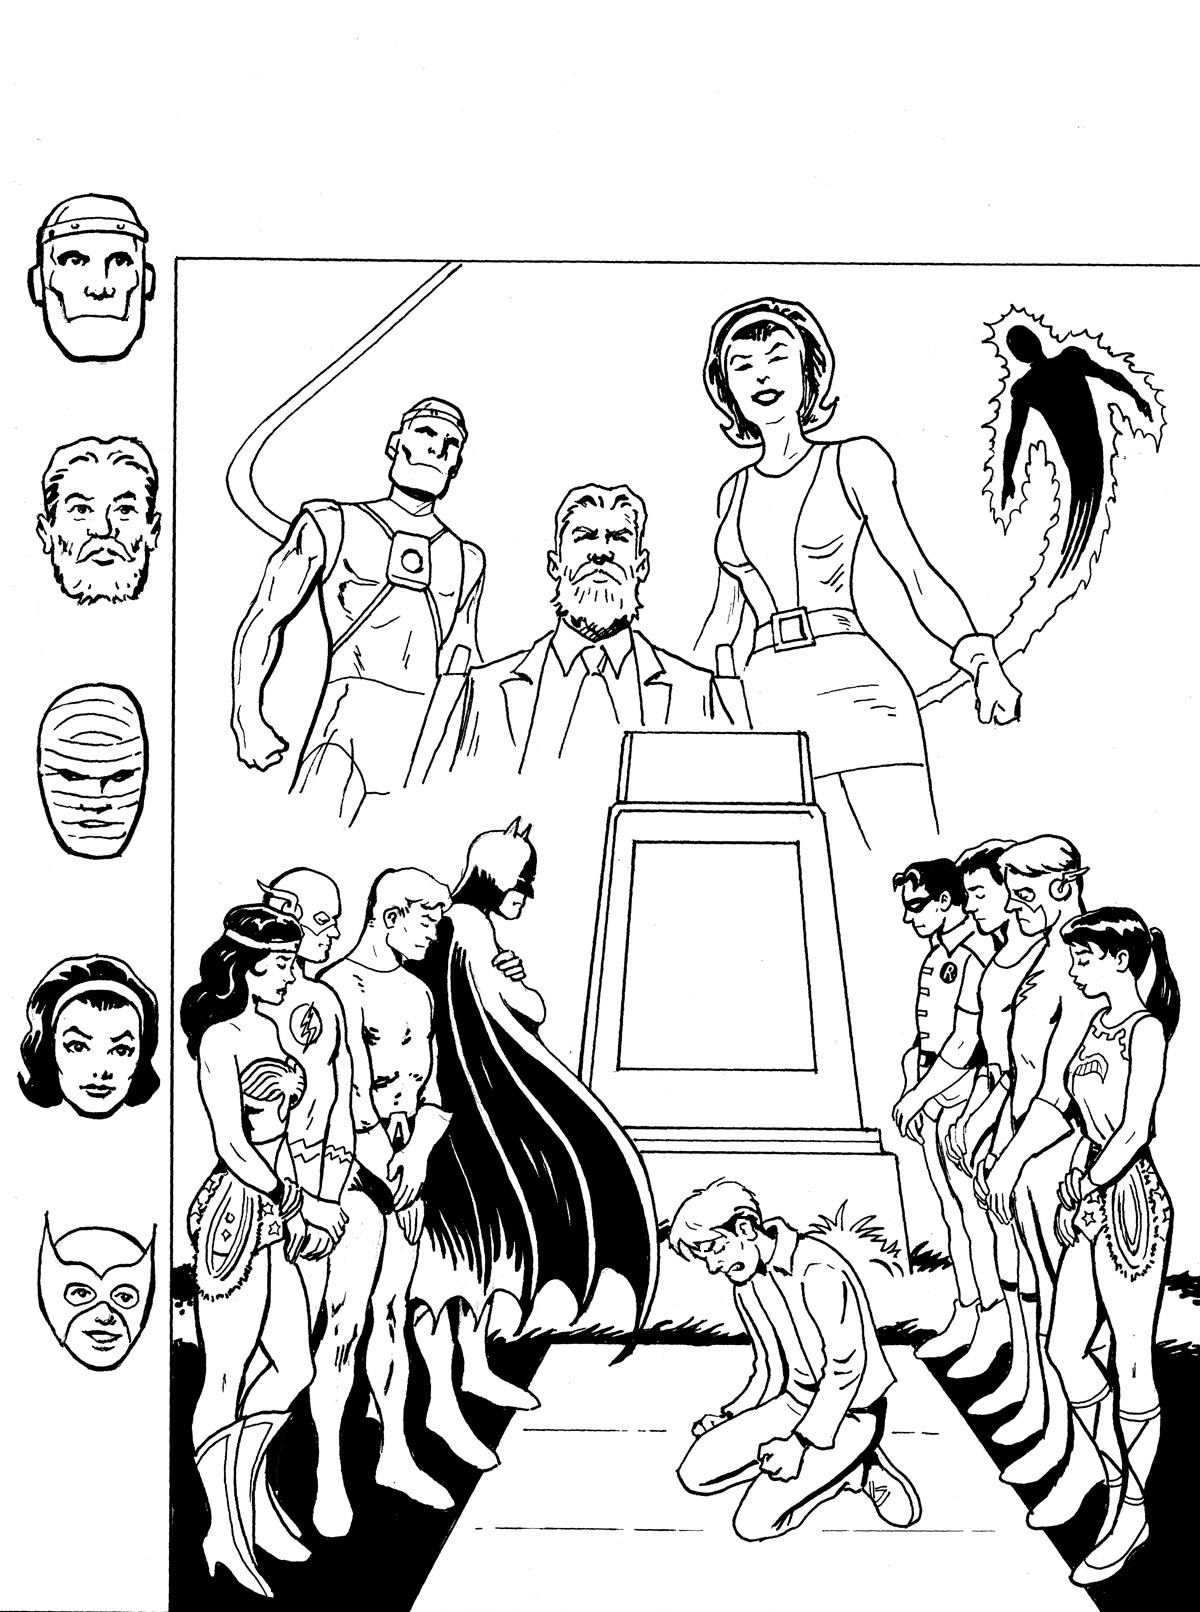 justice league doom coloring pages - photo#13